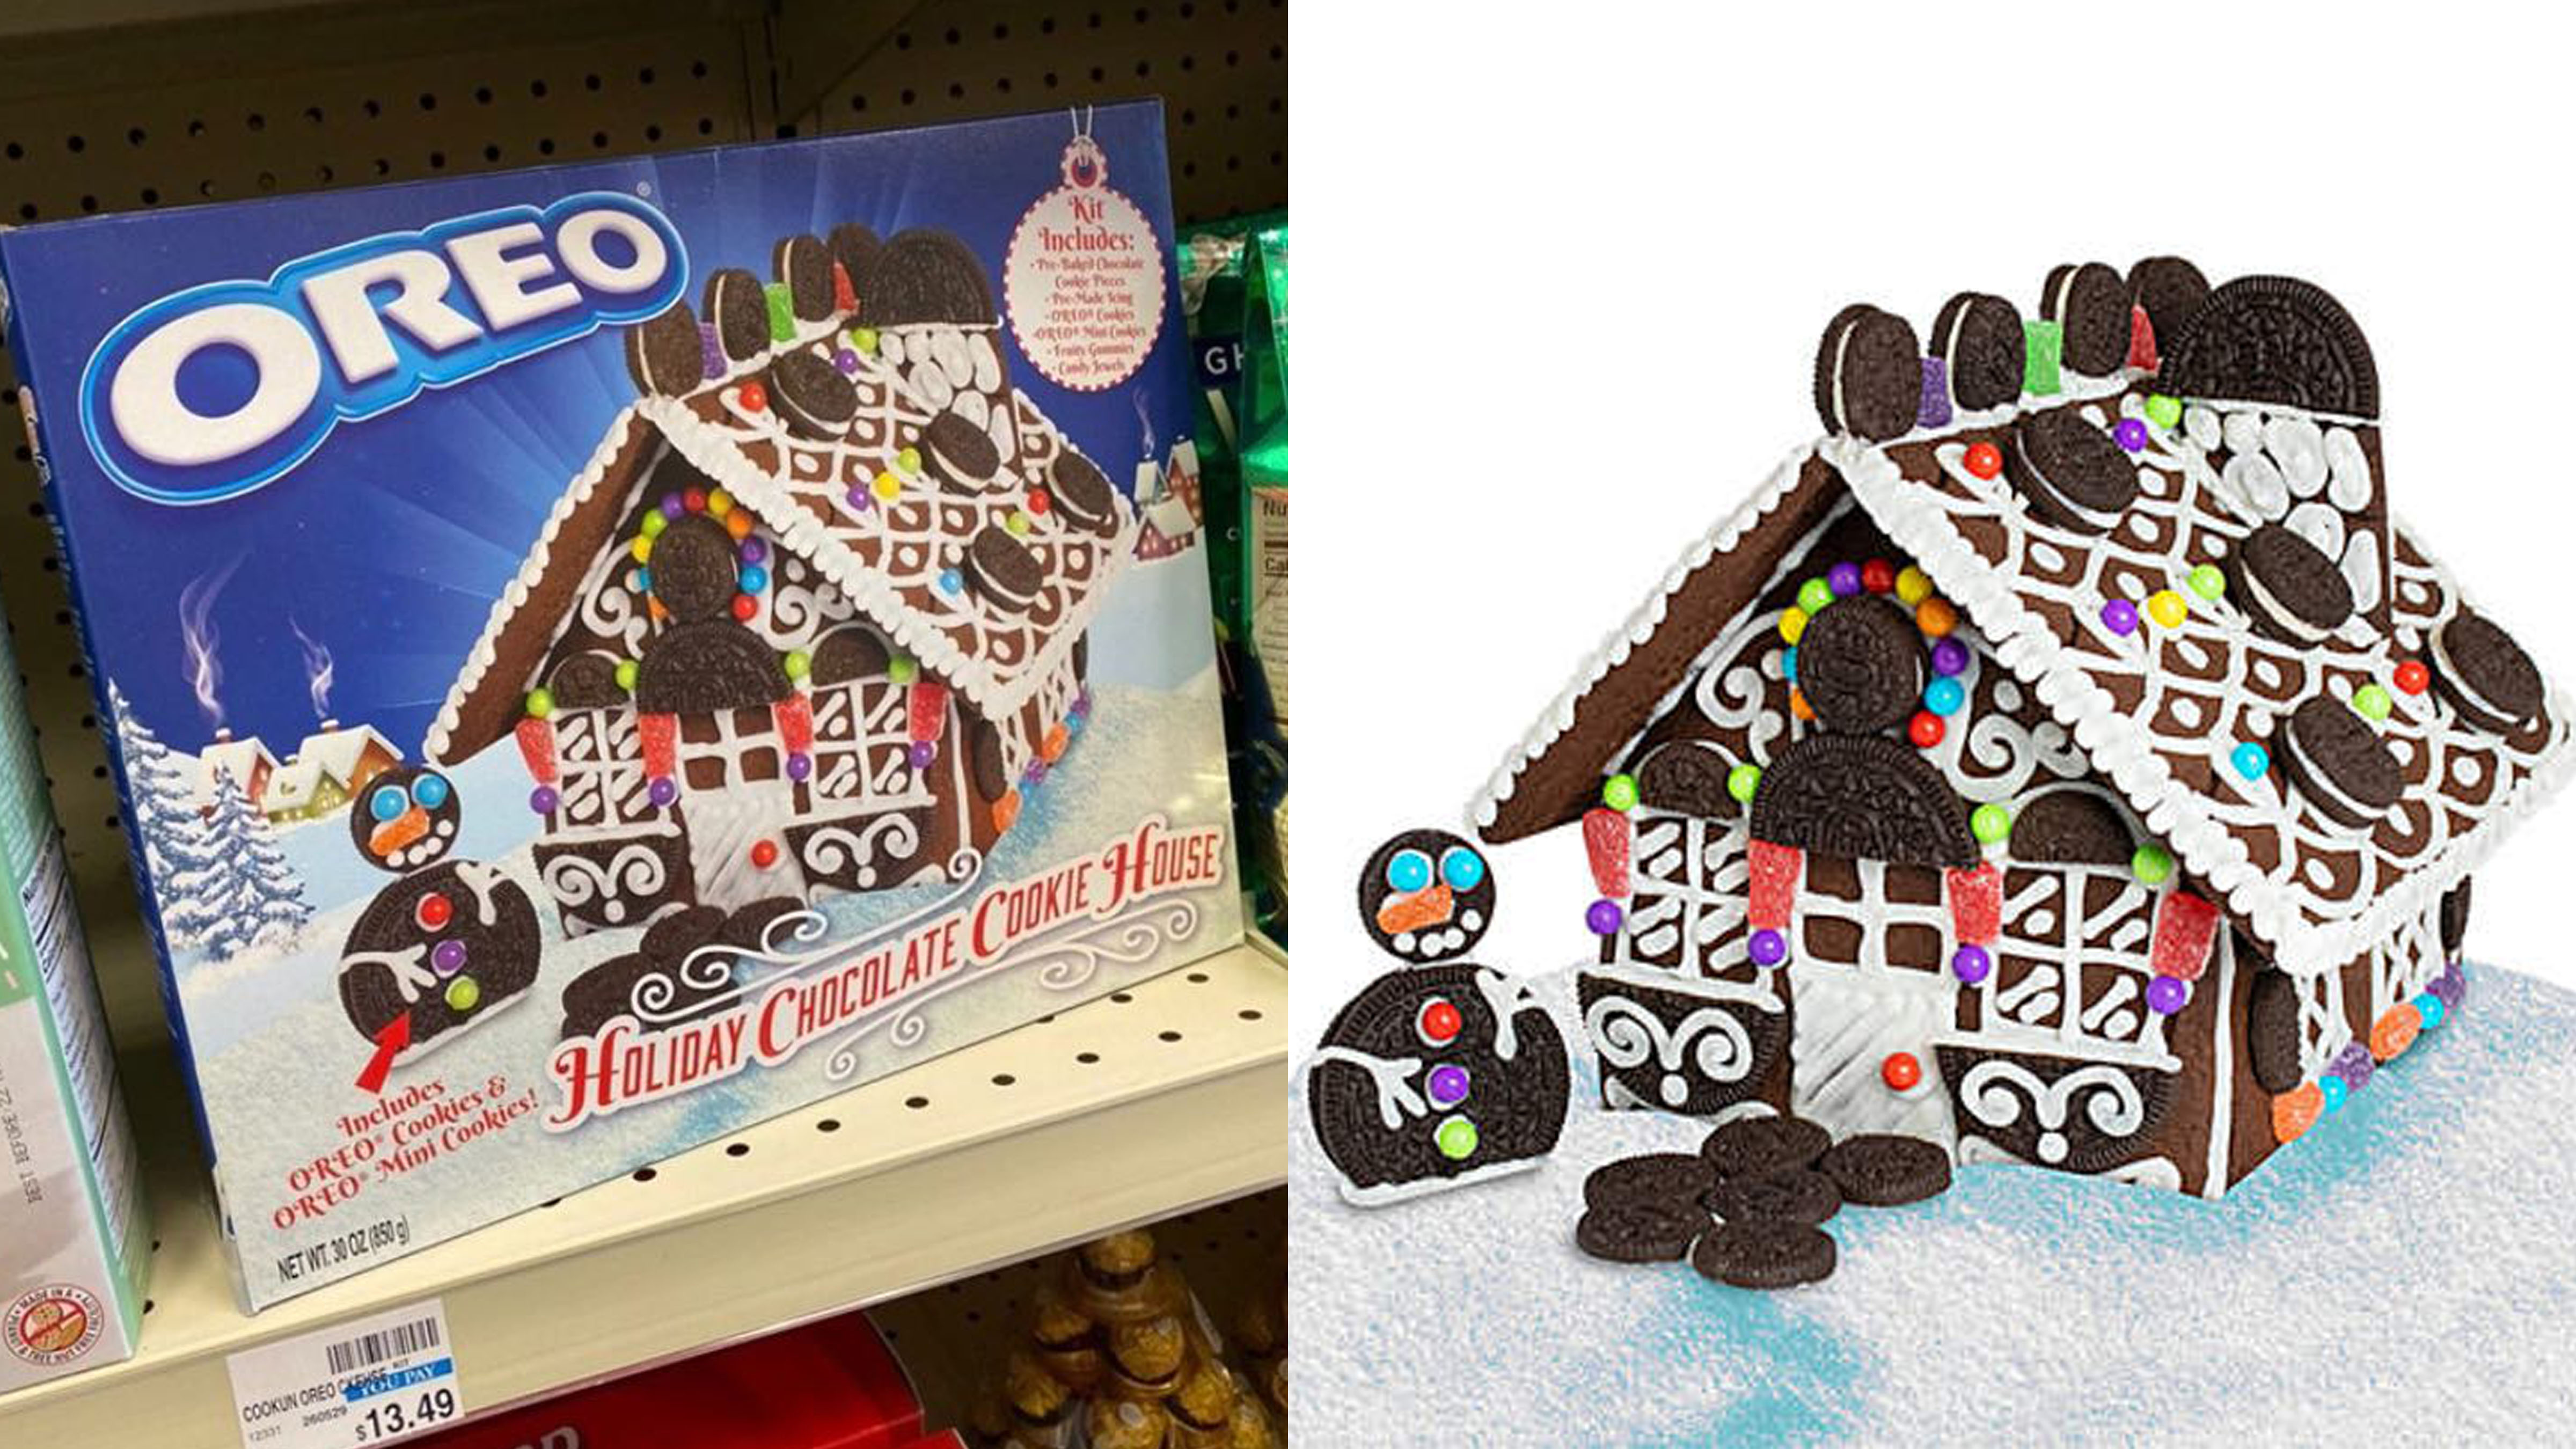 Christmas Gingerbread House Kit.Step Aside Gingerbread Oreo Unveils Its Own Cookie House